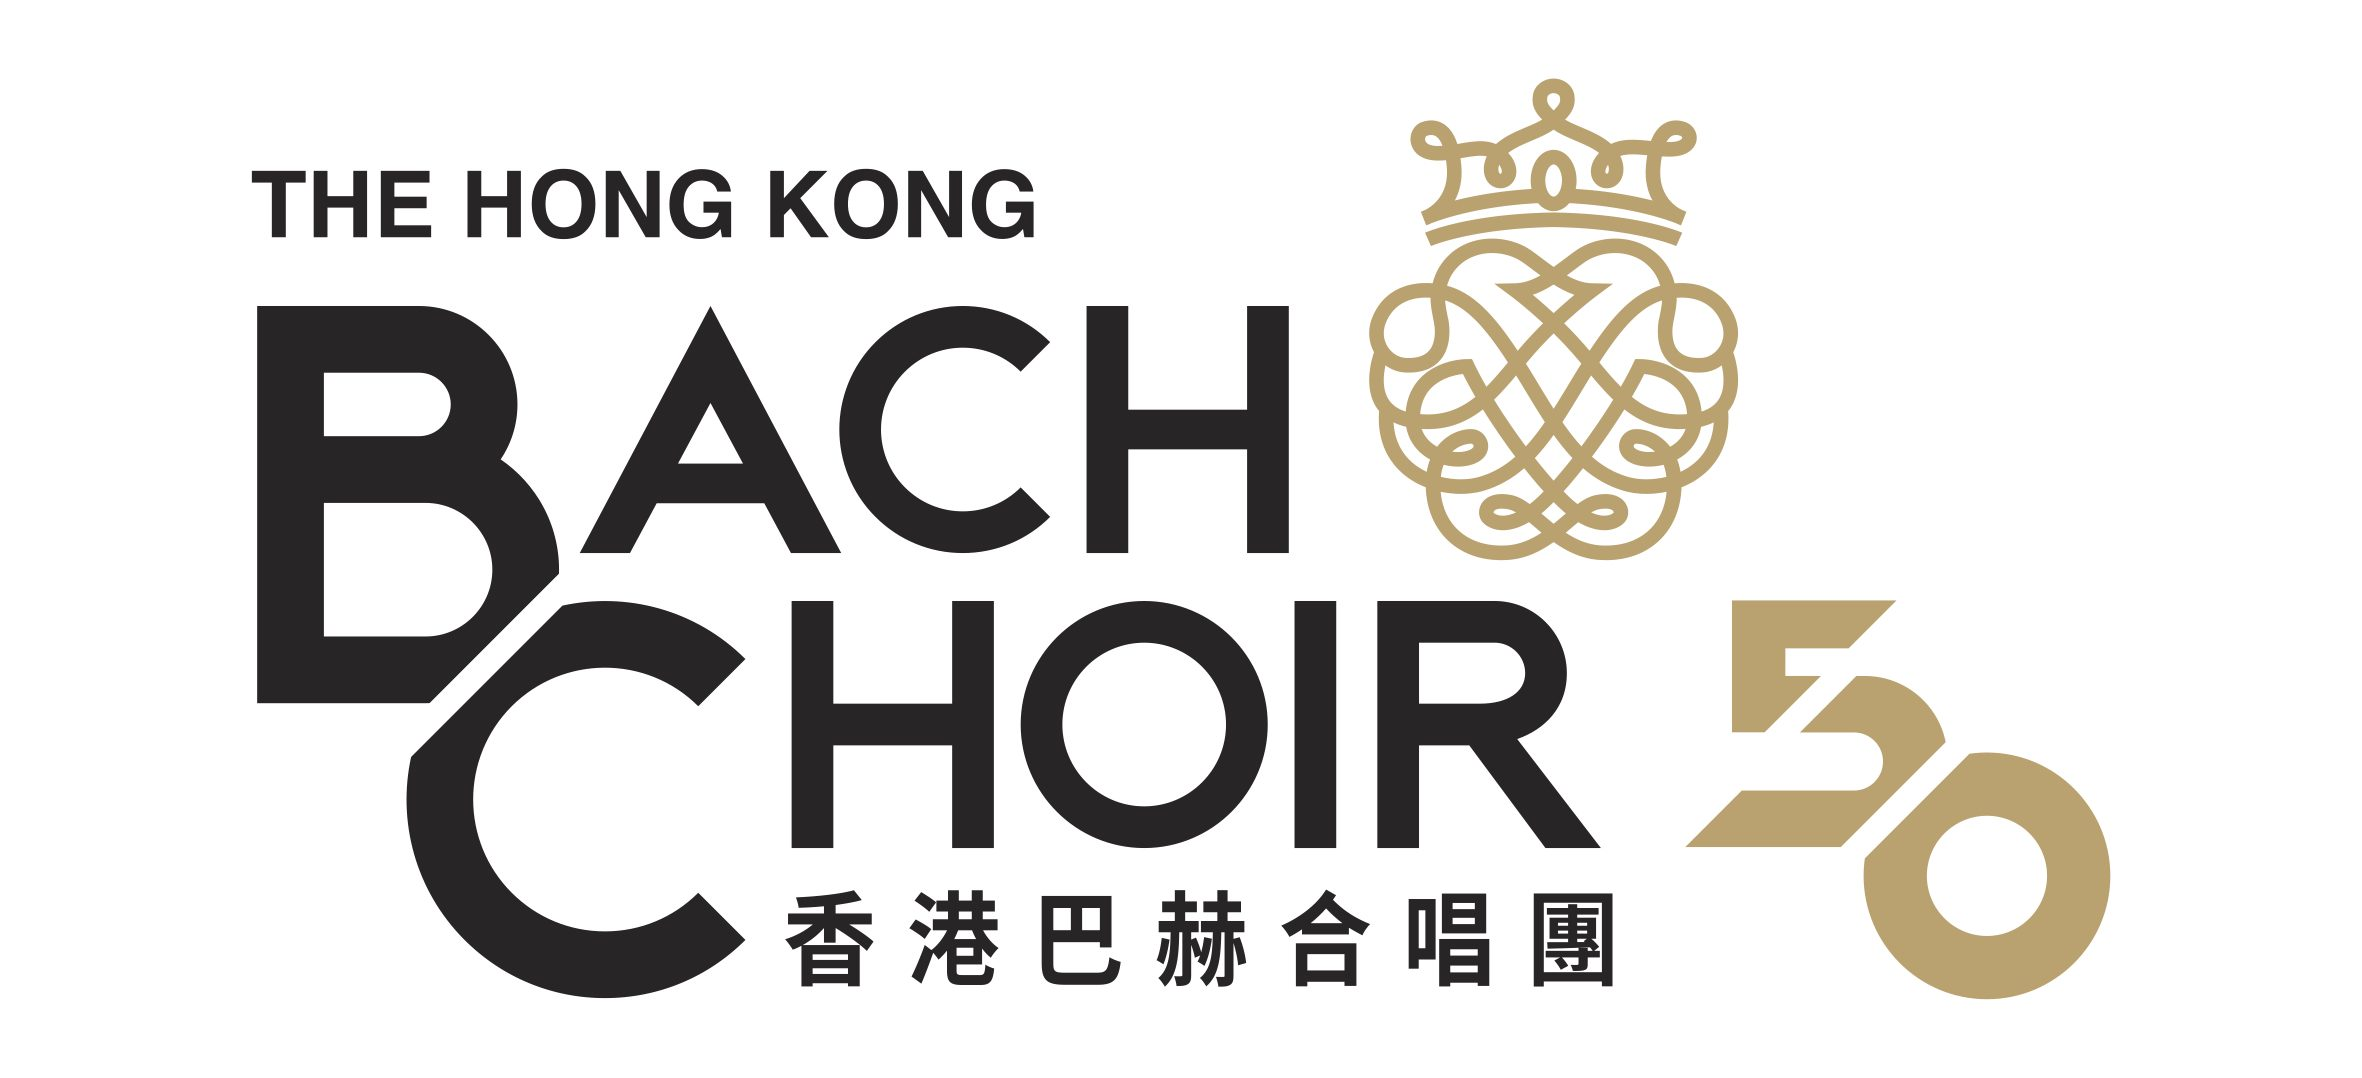 The Hong Kong Bach Choir